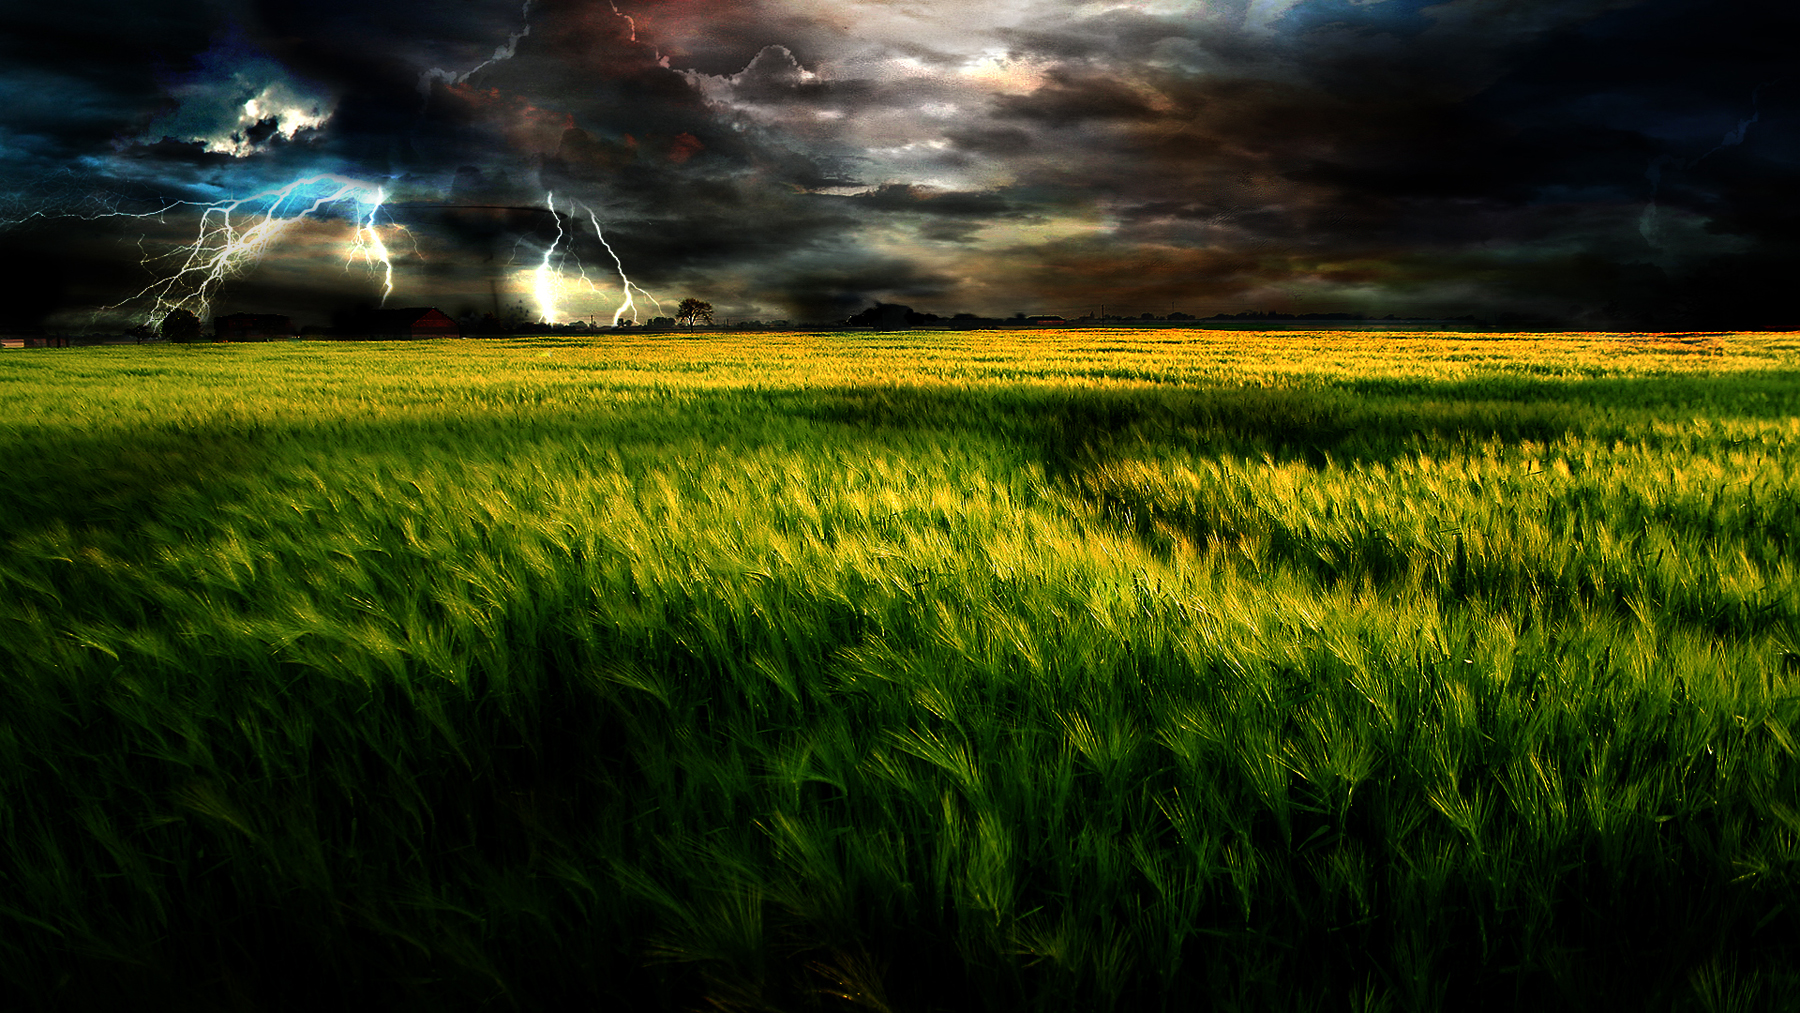 Best Wallpaper Night Grass - grass_field_by_lethalwire  Graphic-723655.jpg